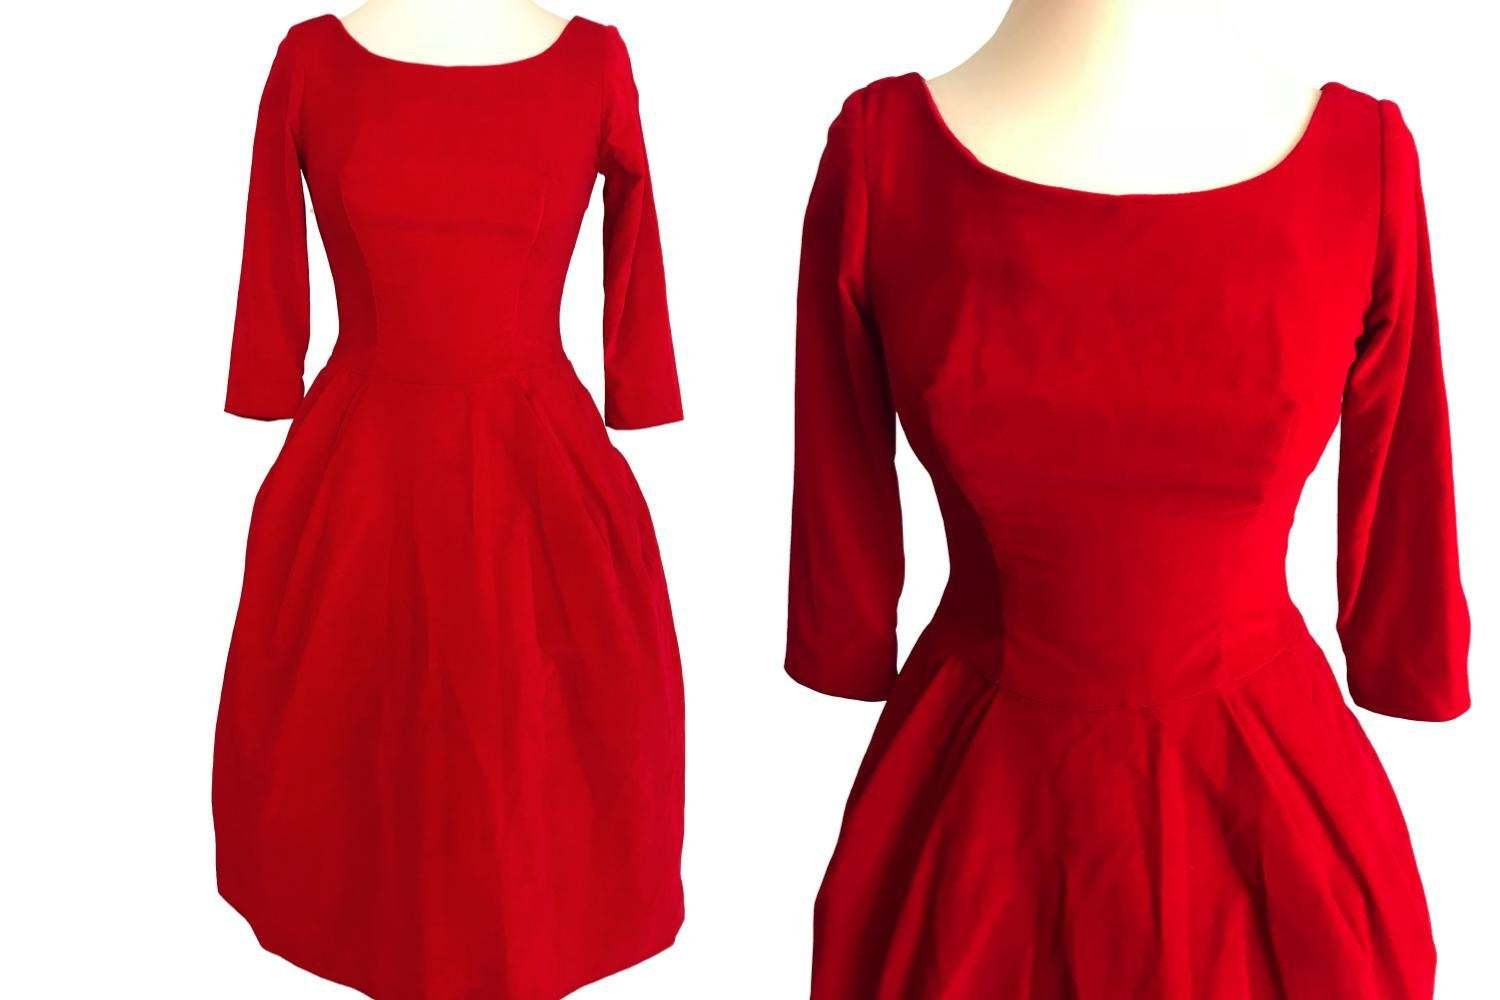 50s Poppy Red Velvet Fit & Flare Xmas Party Bubble Skirt Pin Up Rockabilly Dress image 3